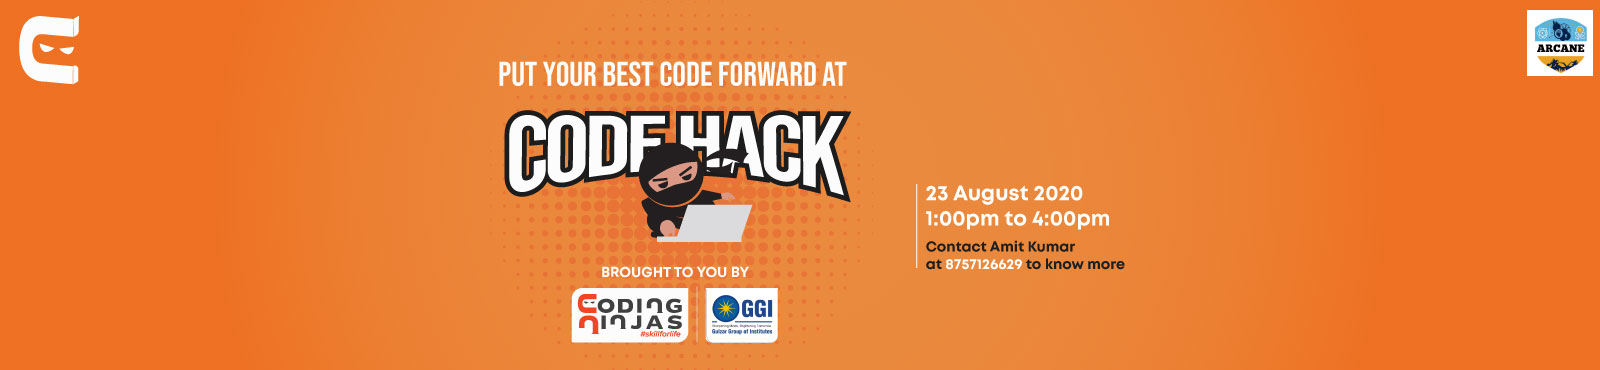 CodeHack, An online coding event in Collaboration with Gulzar Group of Institutes, Punjab